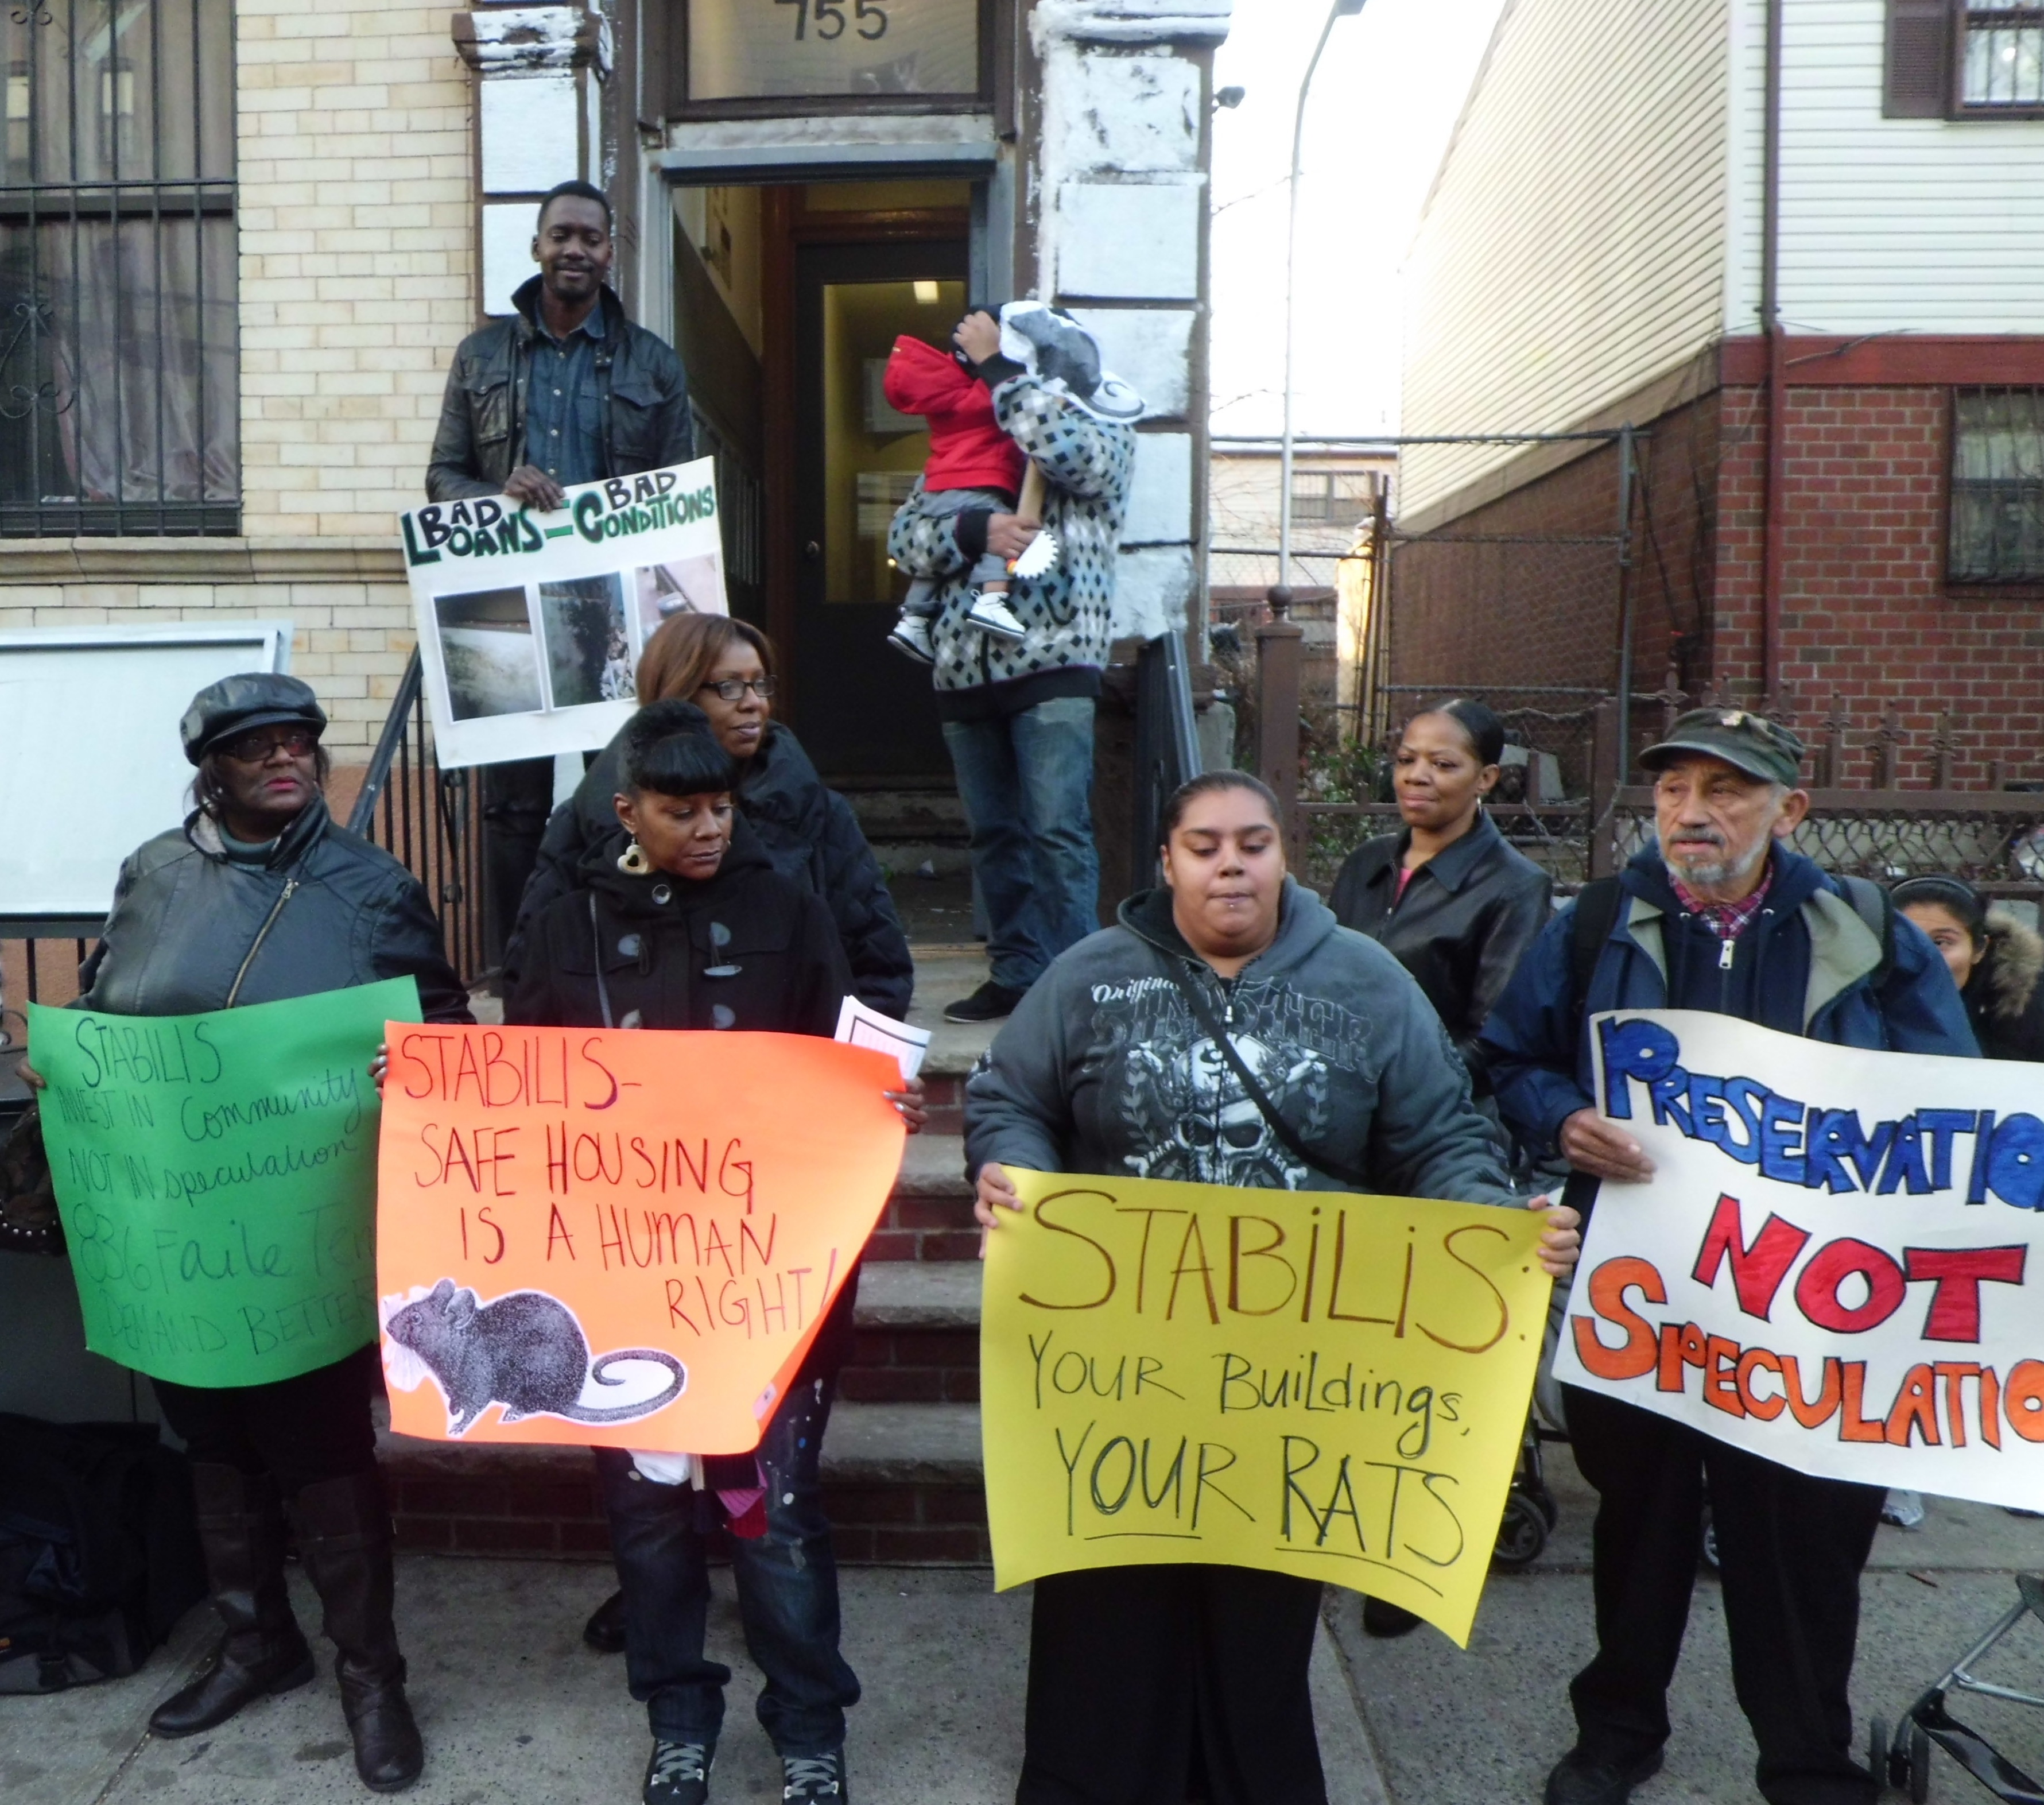 Tenants rallied in front of 755 Jackson Avenue to draw attention to the building's horrific conditions.